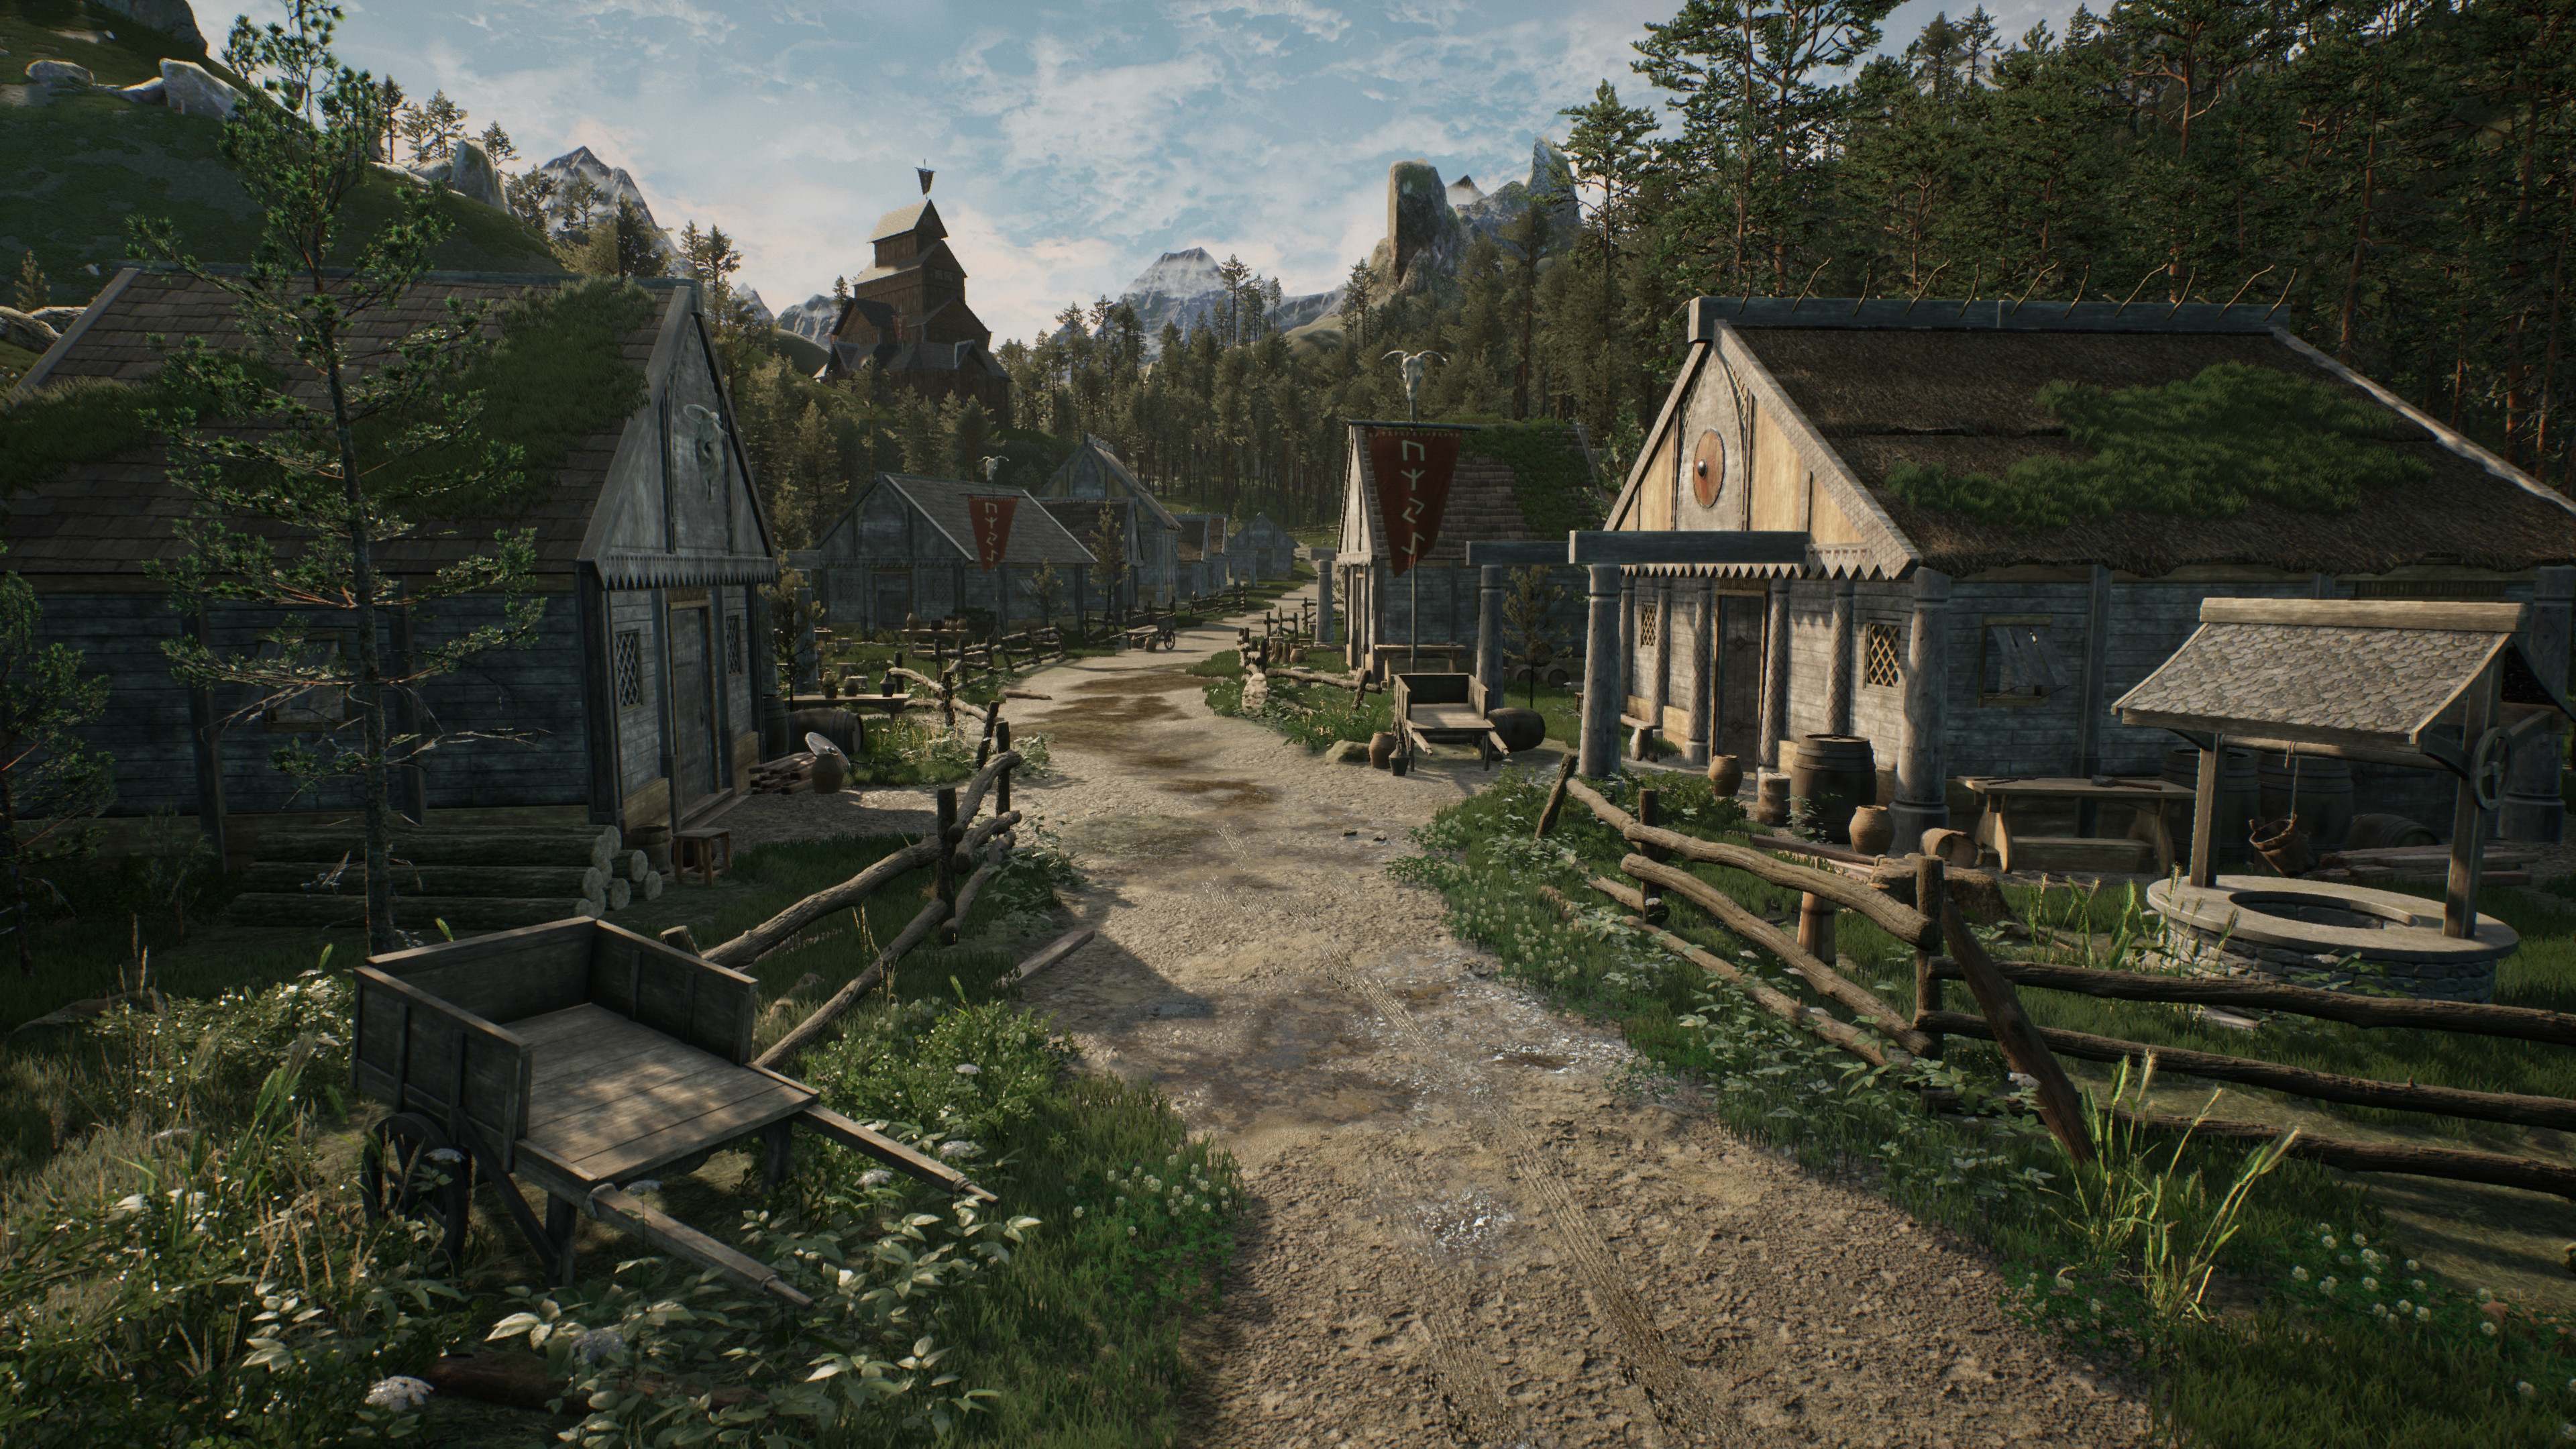 Scandinavian Village: This was the focal shot I spent the most time working on. I believe the terrain materials and foliage really helped bring the aesthetic of the world alive along with my basic materials consisting of woods, stones, bone, and linen.